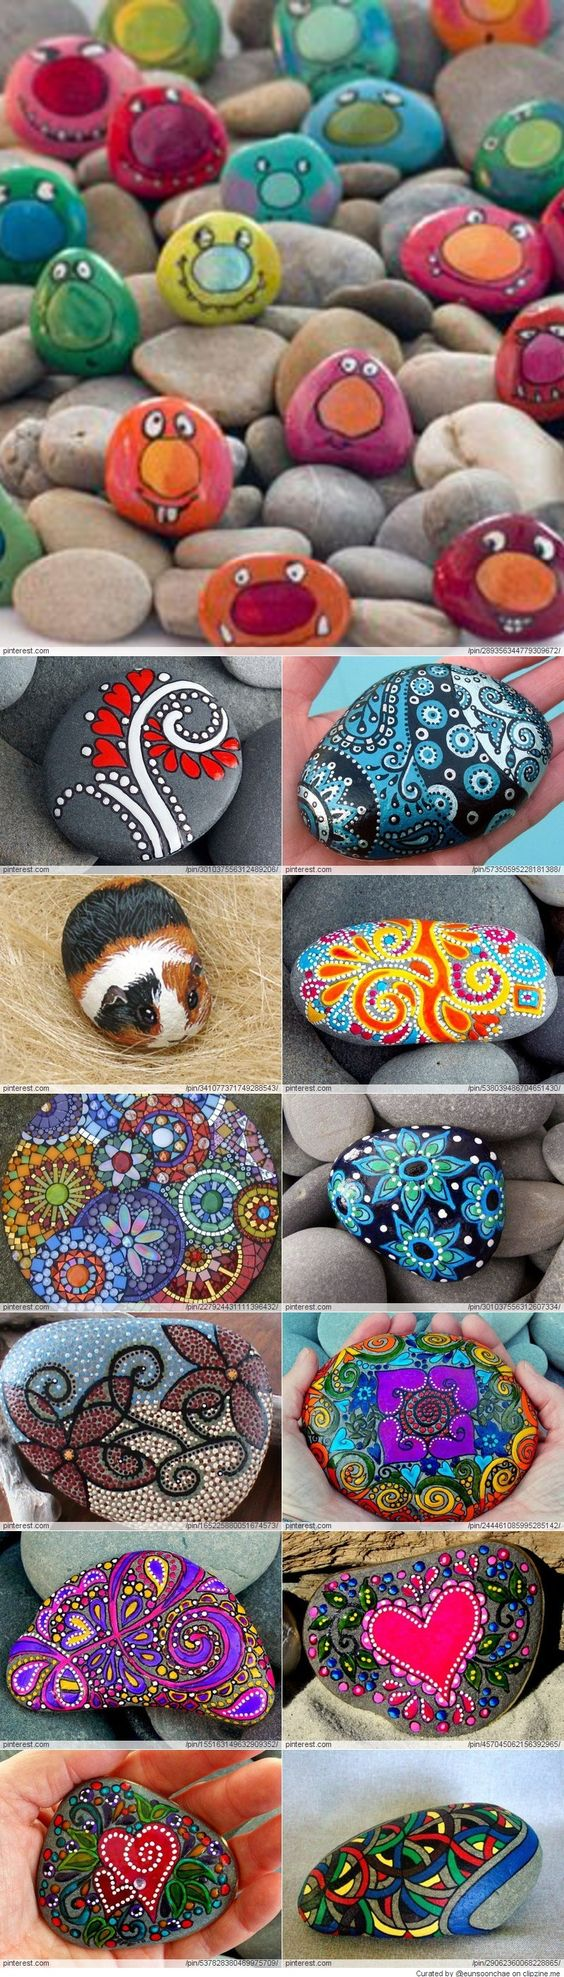 Great idea for stone art love the little faces http for Pebble art ideas